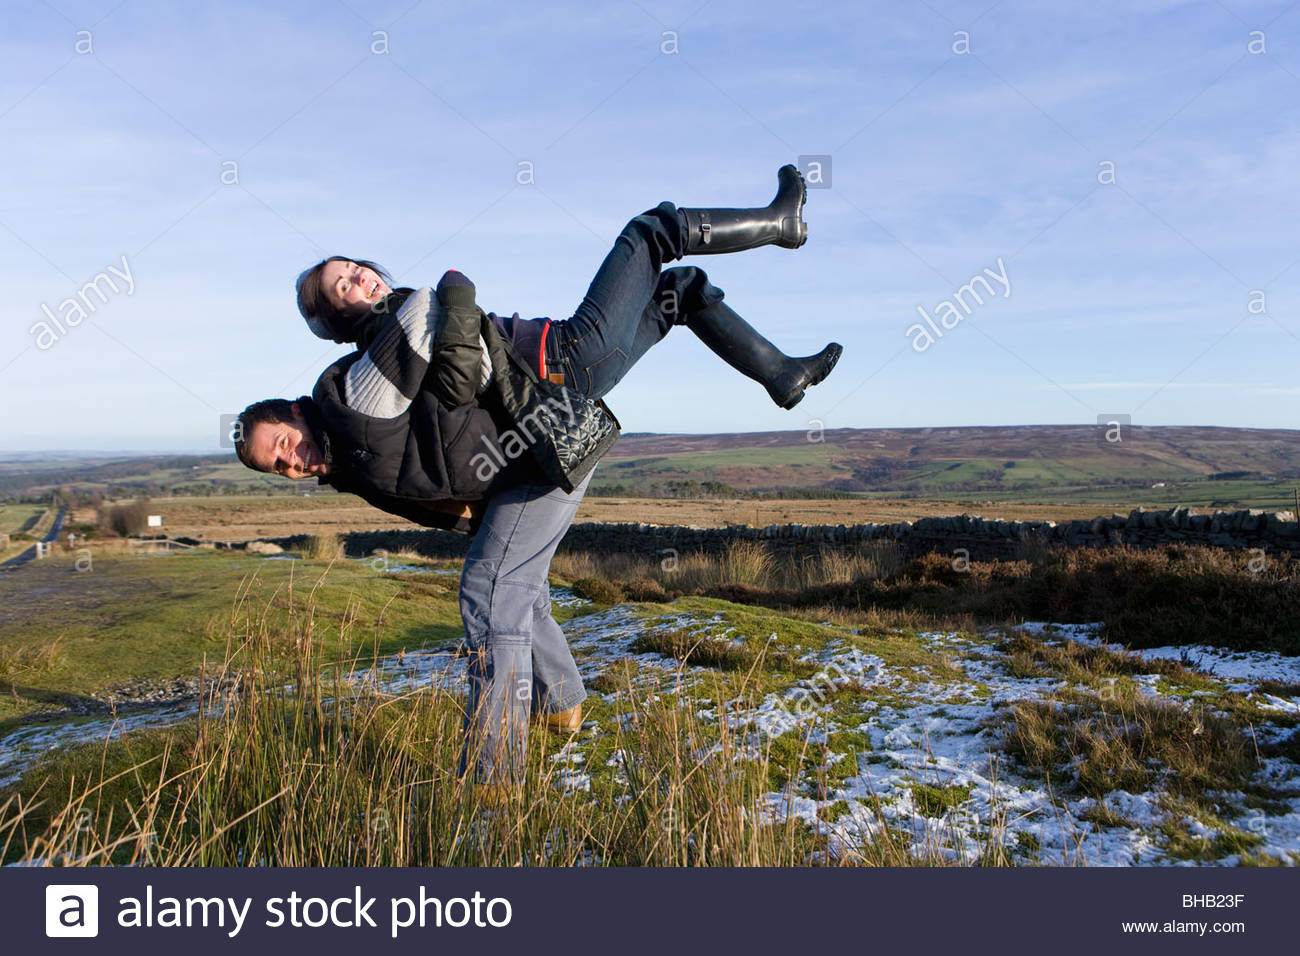 Playful couple in rural field - Stock Image